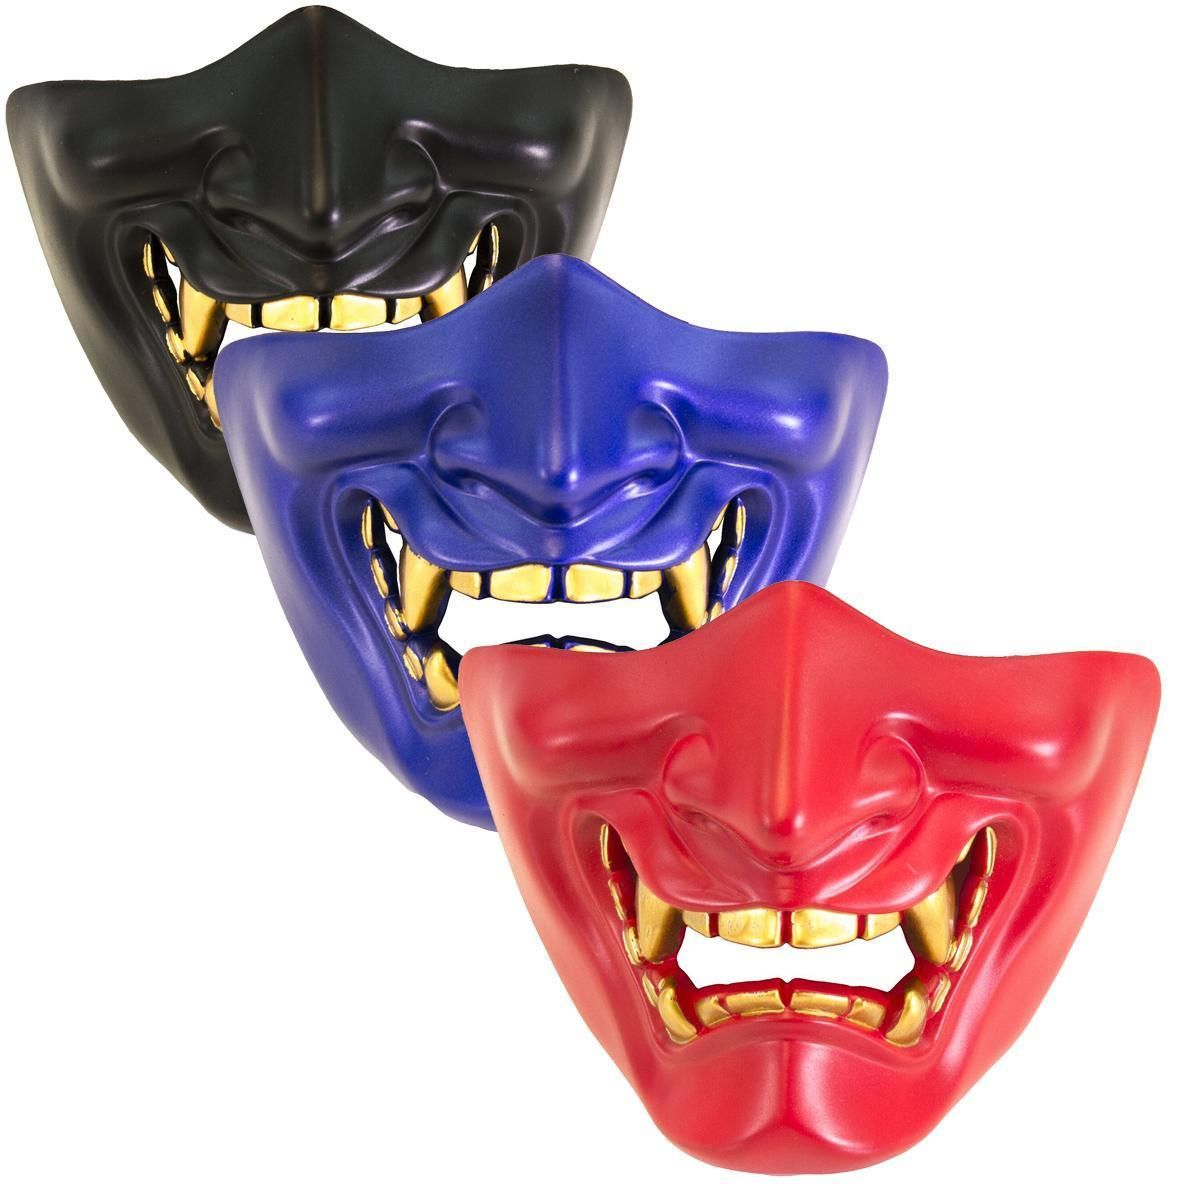 Nuprol airsoft DEVIL Lower Face Shield Mask Pistole 6 mm BB /'s 6033